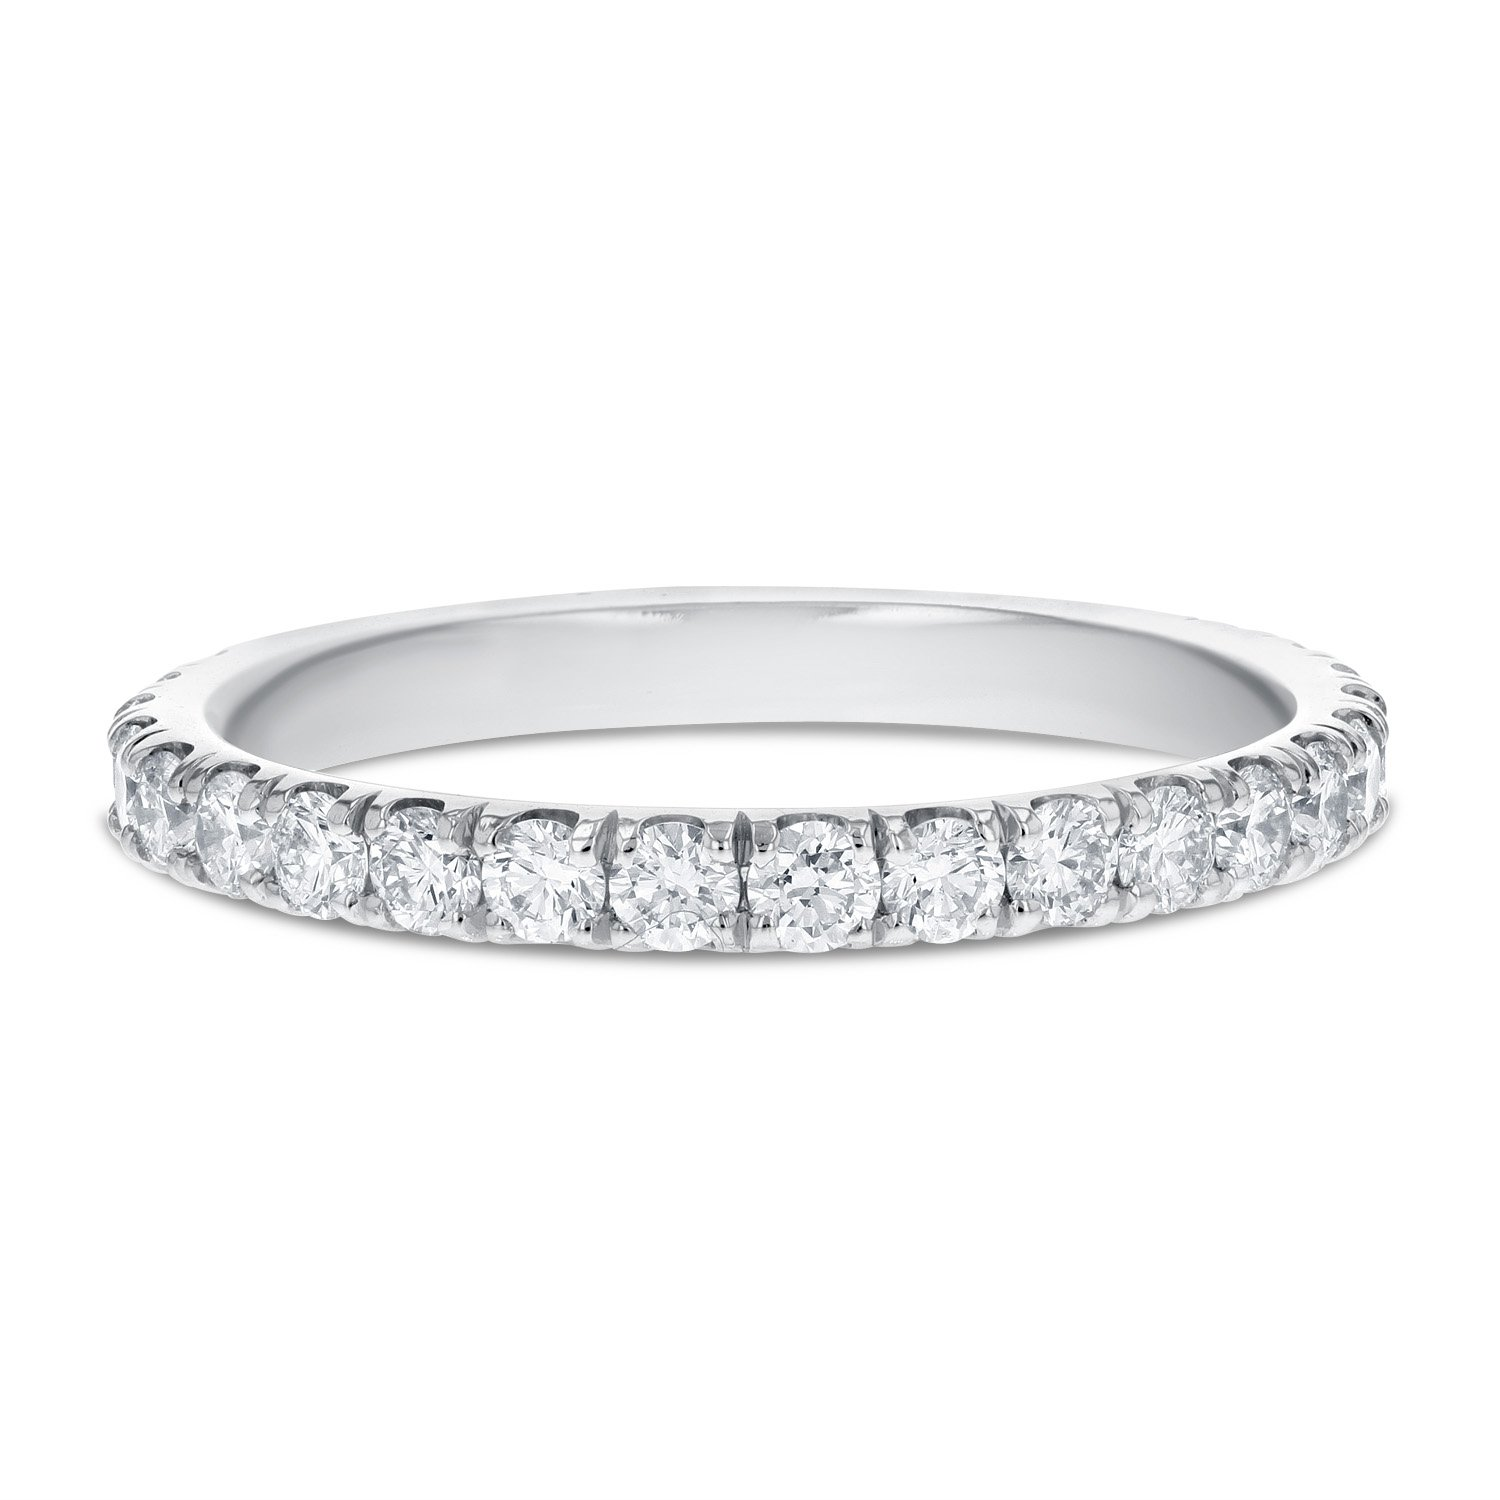 IGI Certified 18K White Gold Comfort Fit Diamond Eternity Band, 2.0mm (0.66 cttw, F-G Color, VS2-SI1)